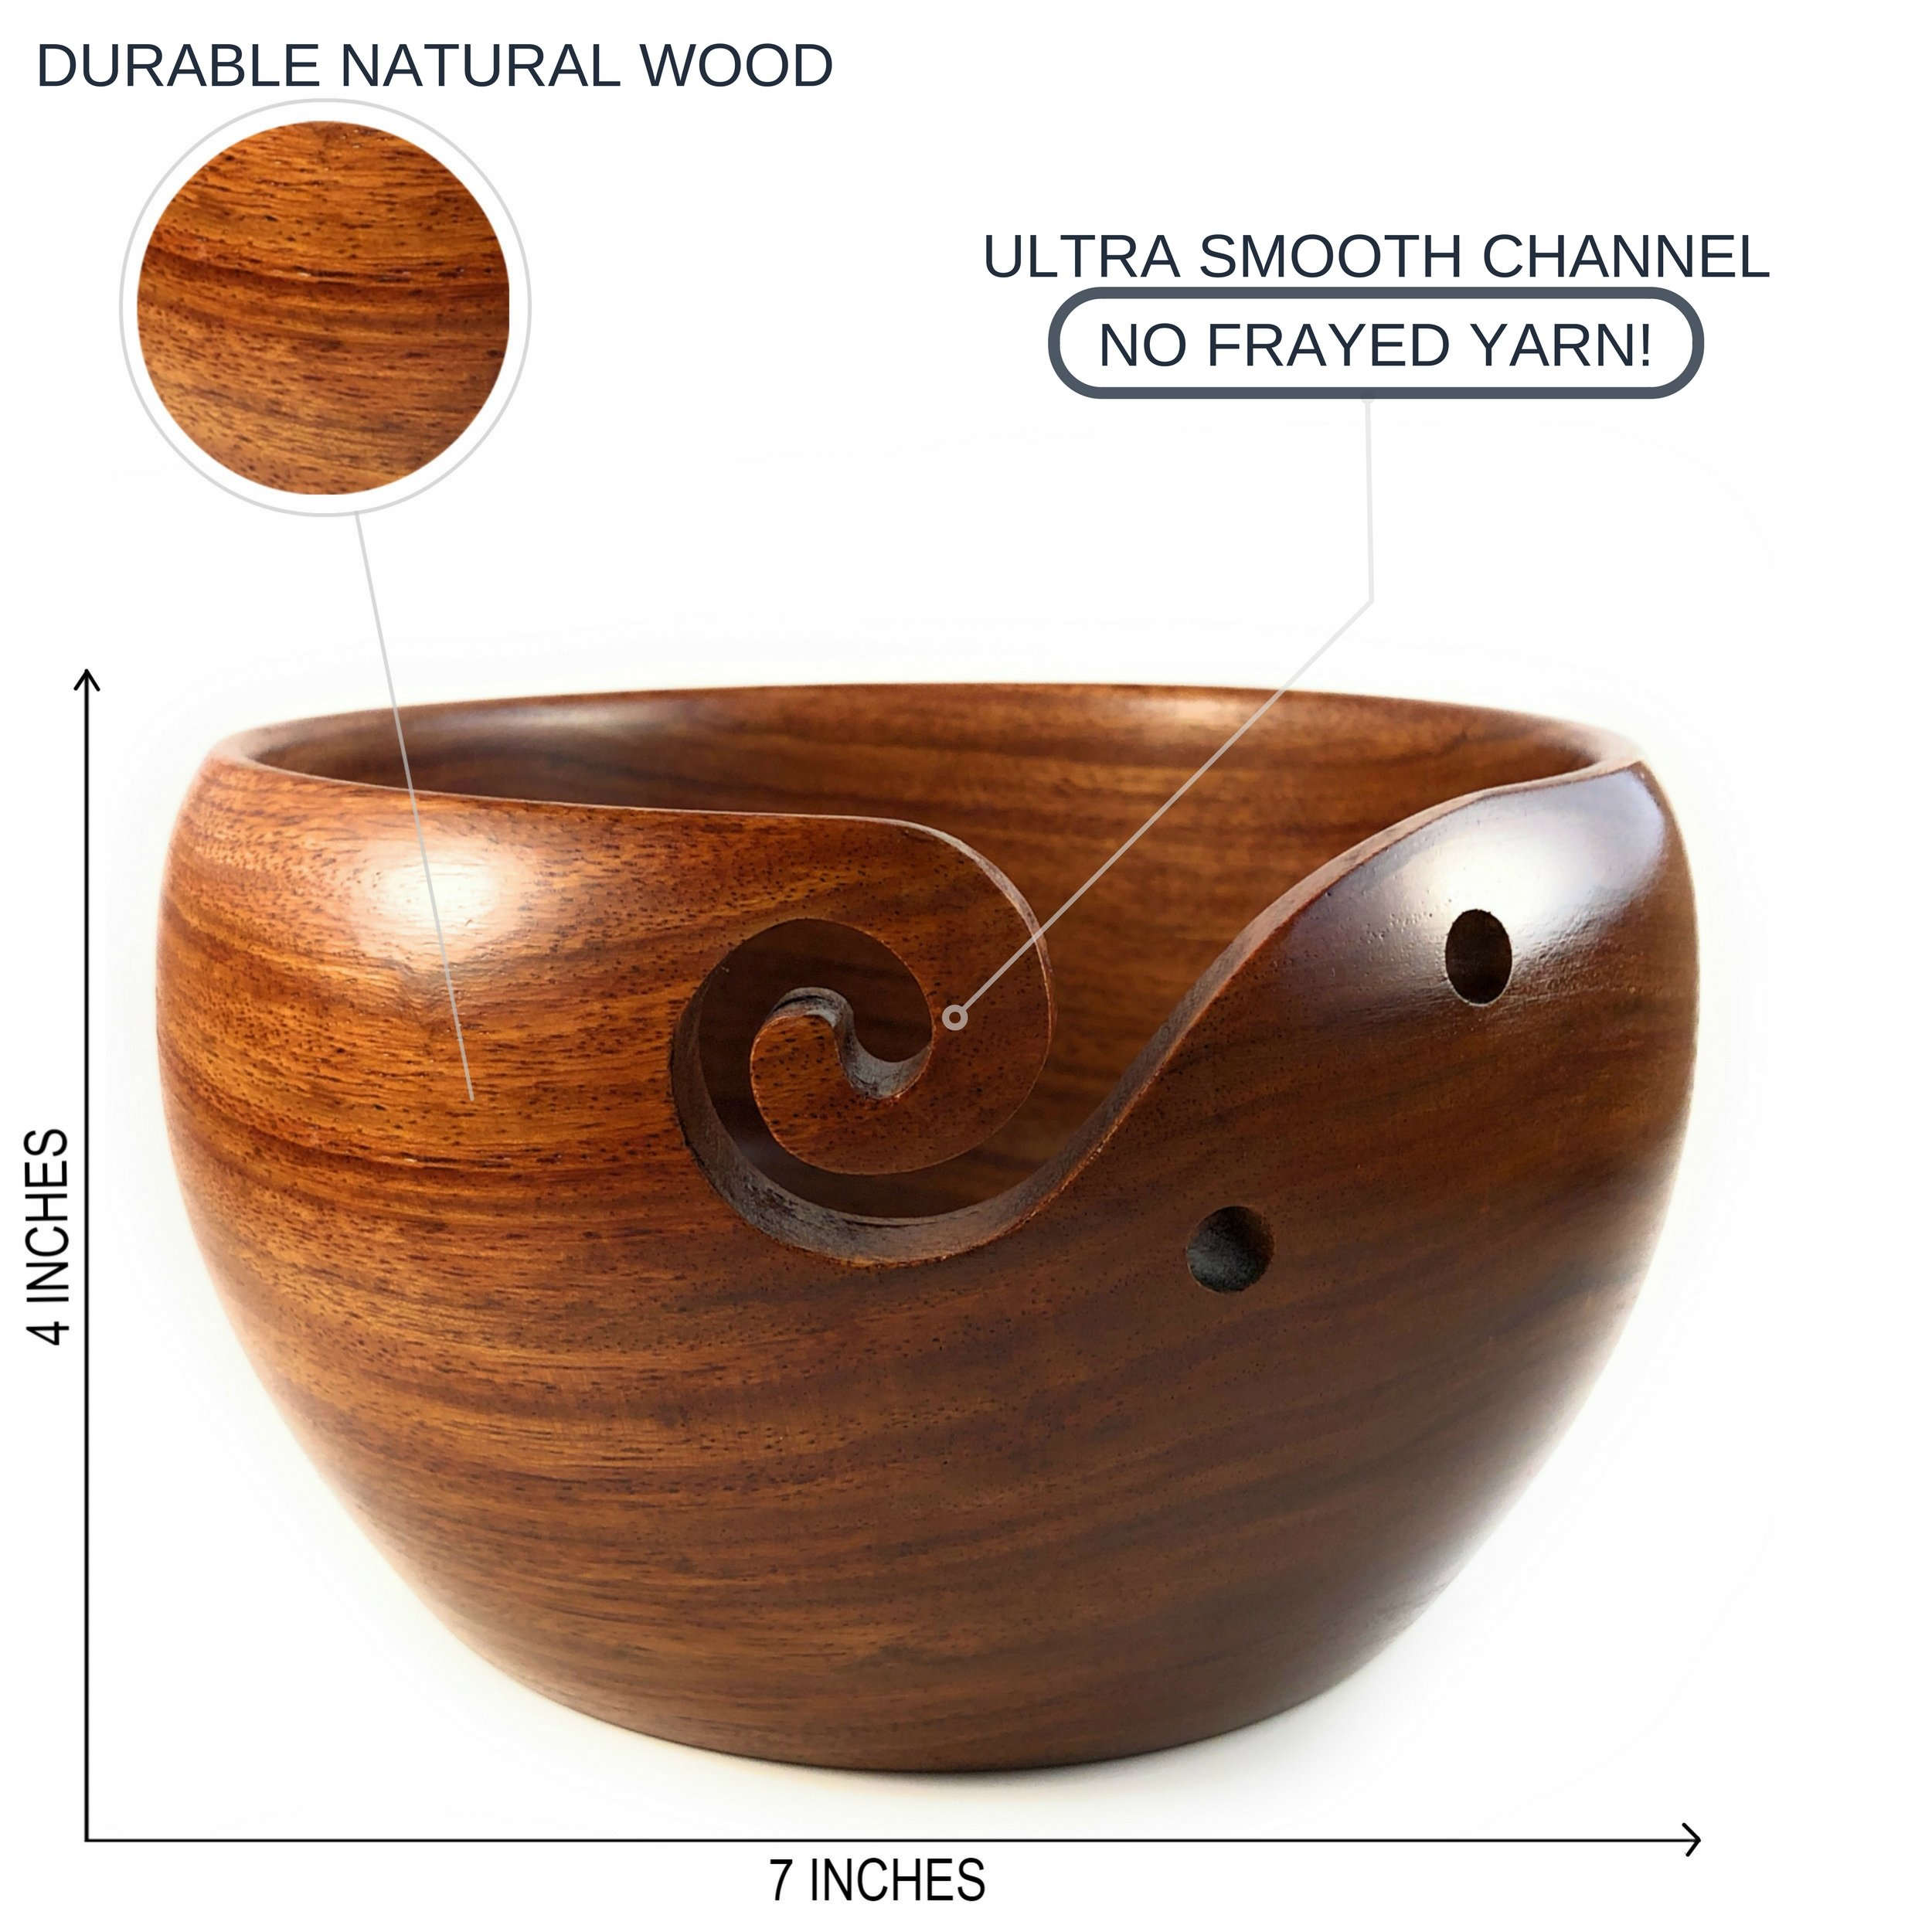 Yarn & Fiber Premium Yarn Bowl | Large 7x4 Inch with Travel Bag | Smooth Handcrafted Rosewood, Stop Yarn From Rolling, Knitting and Crochet Yarn Holder by Yarn & Fiber (Image #6)